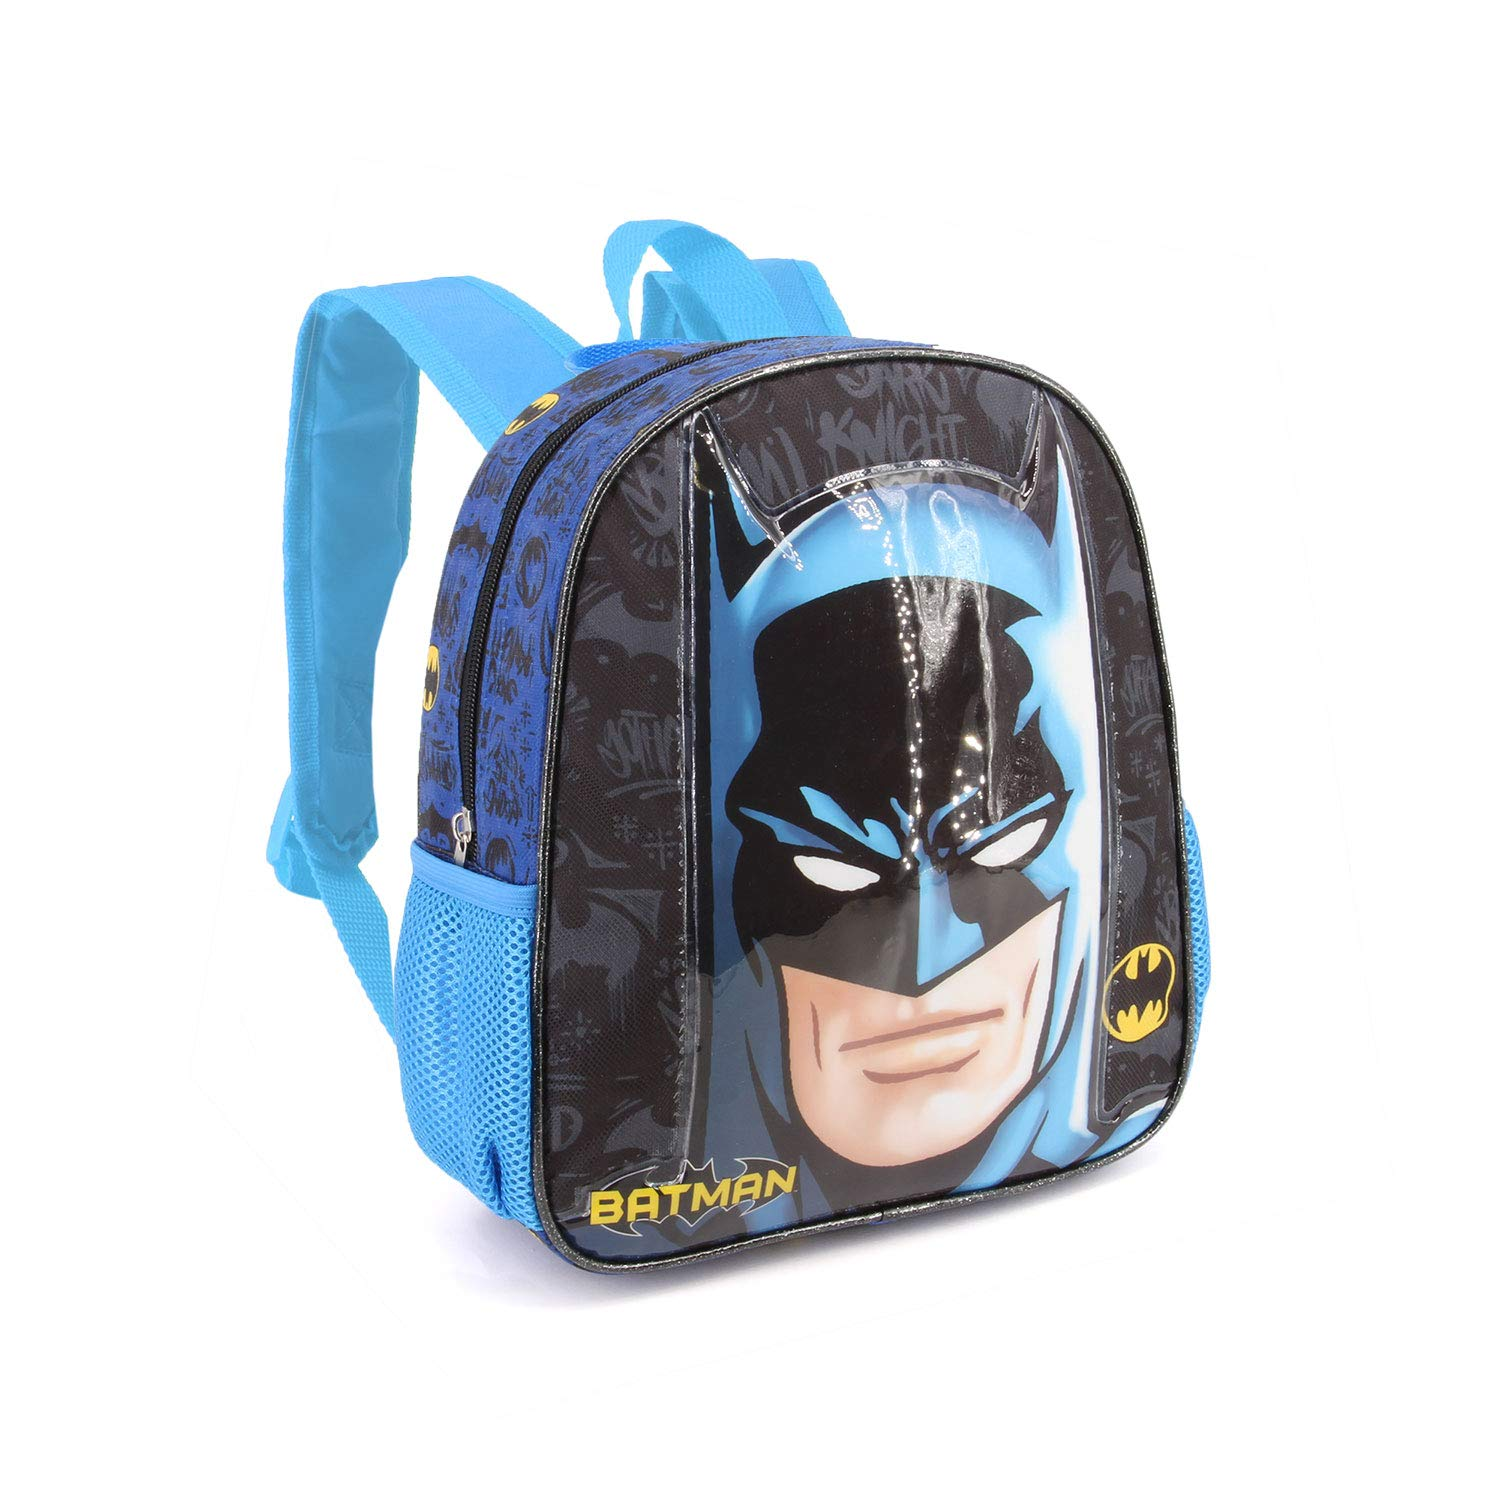 Karactermania Batman Knight-Sac à Dos Basic Mochila Infantil 40 Centimeters 18.2 (Multicolour): Amazon.es: Equipaje